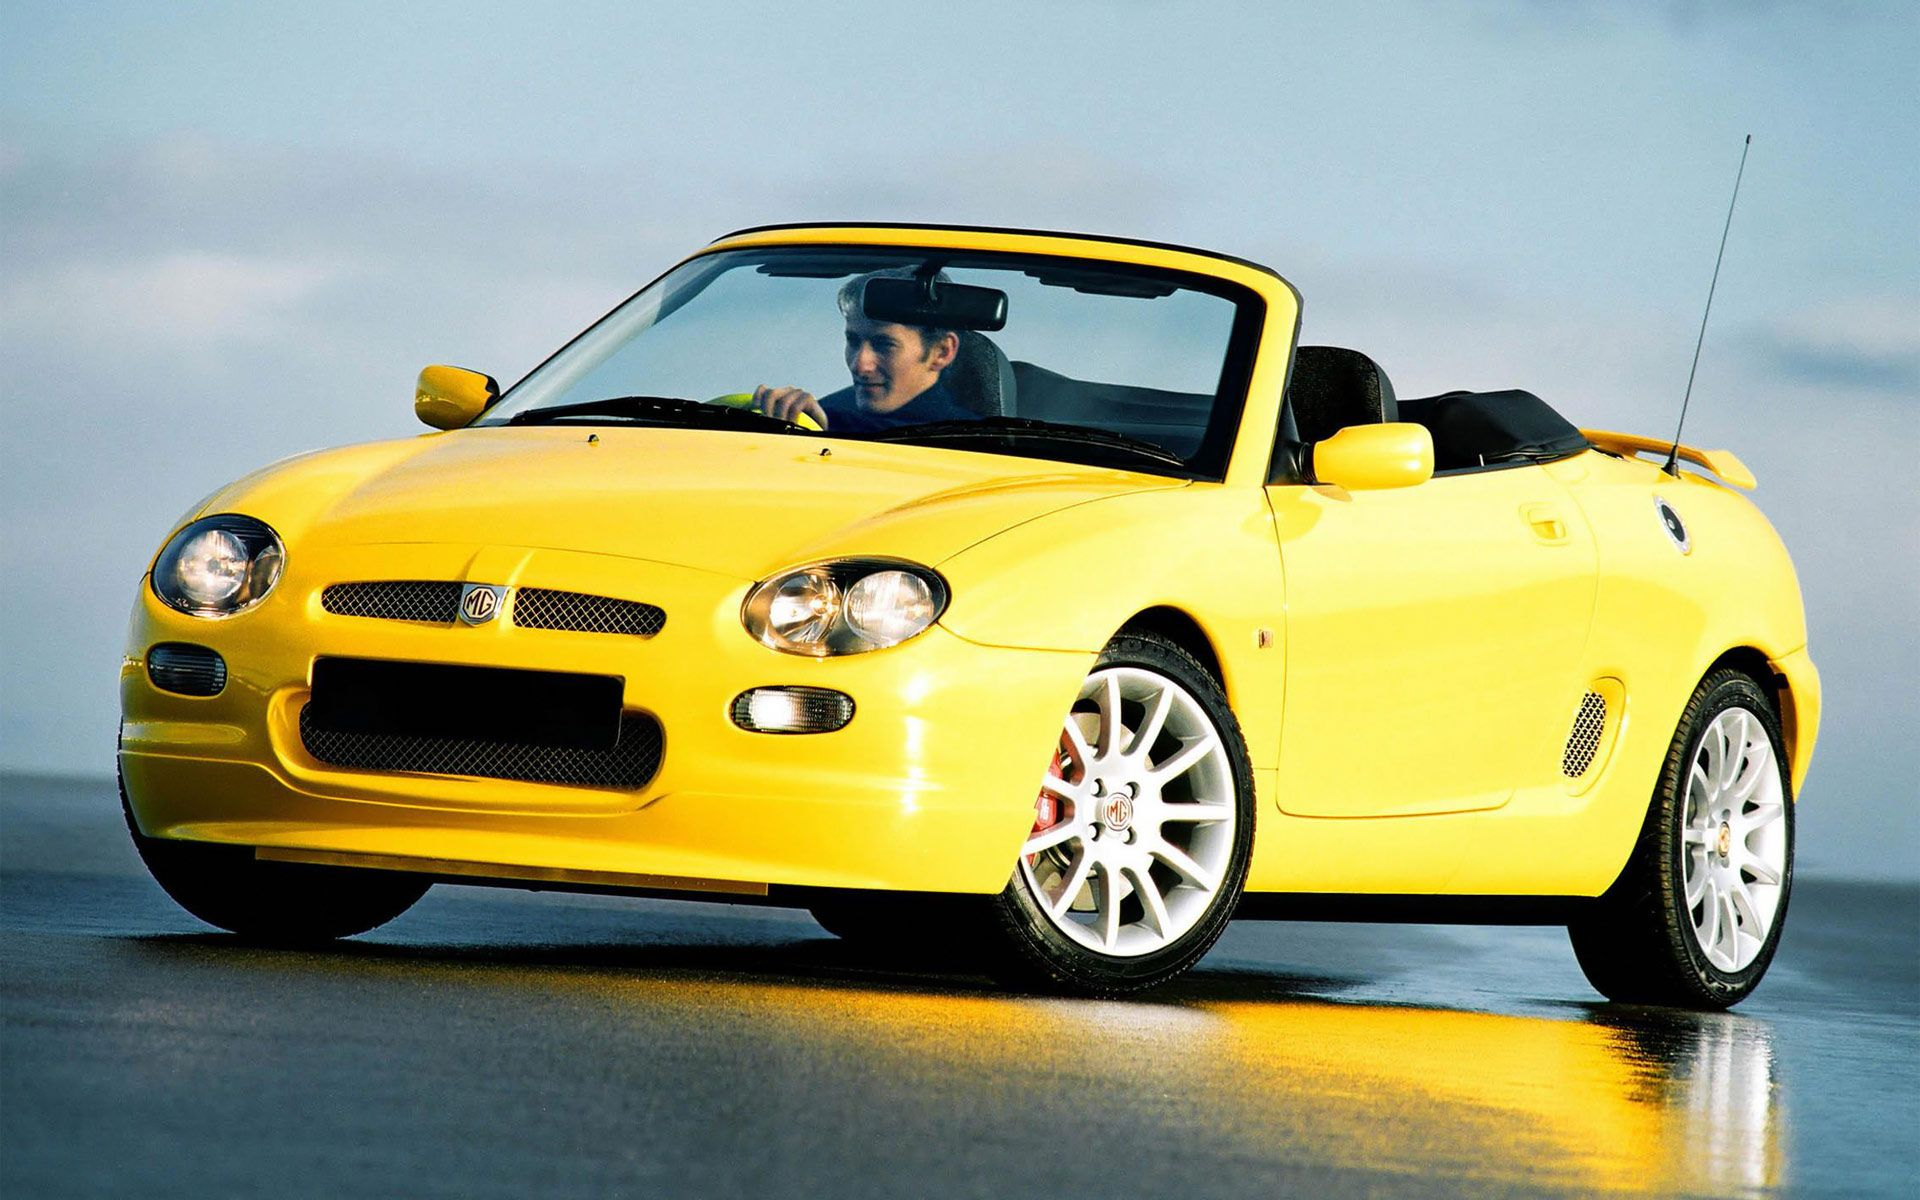 Cool Yellow Cars My Wheels Pinterest Cars And Yellow - Cool yellow cars